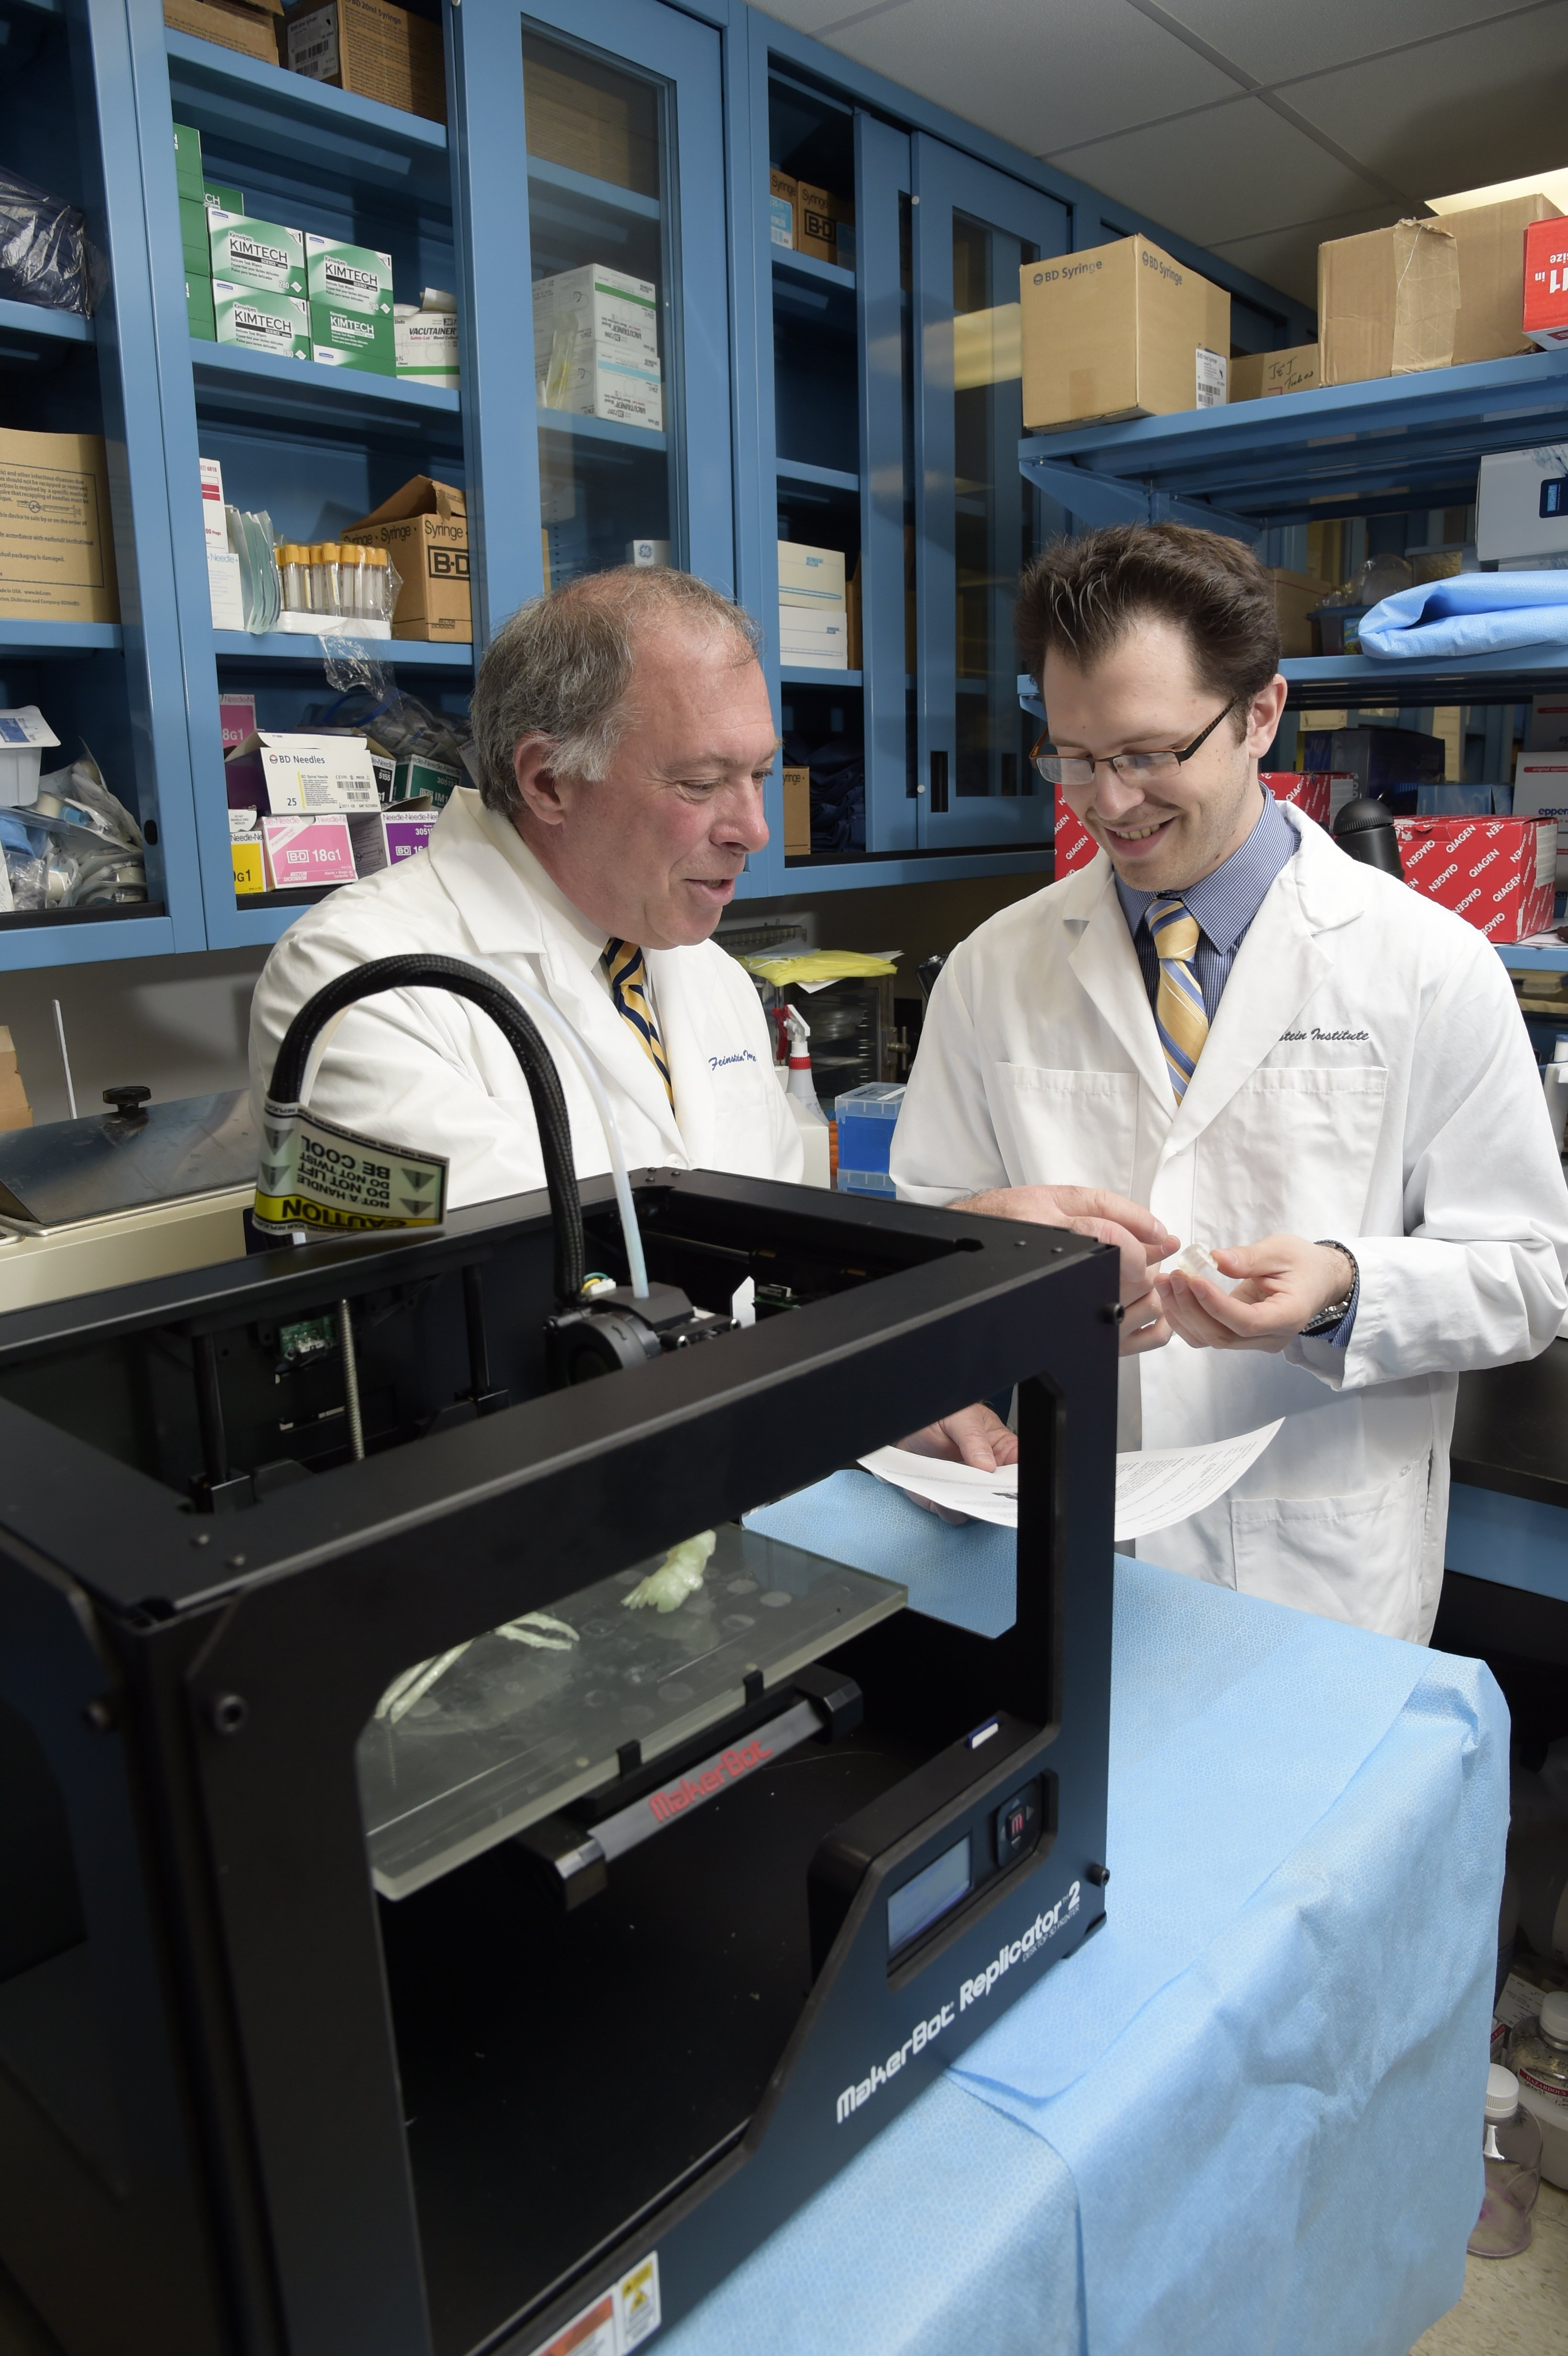 Physicians at North Shore University Hospital/Feinstein Institute for Medicine in Manhassett, N.Y., use a 3-D printer to assist with medical cases.